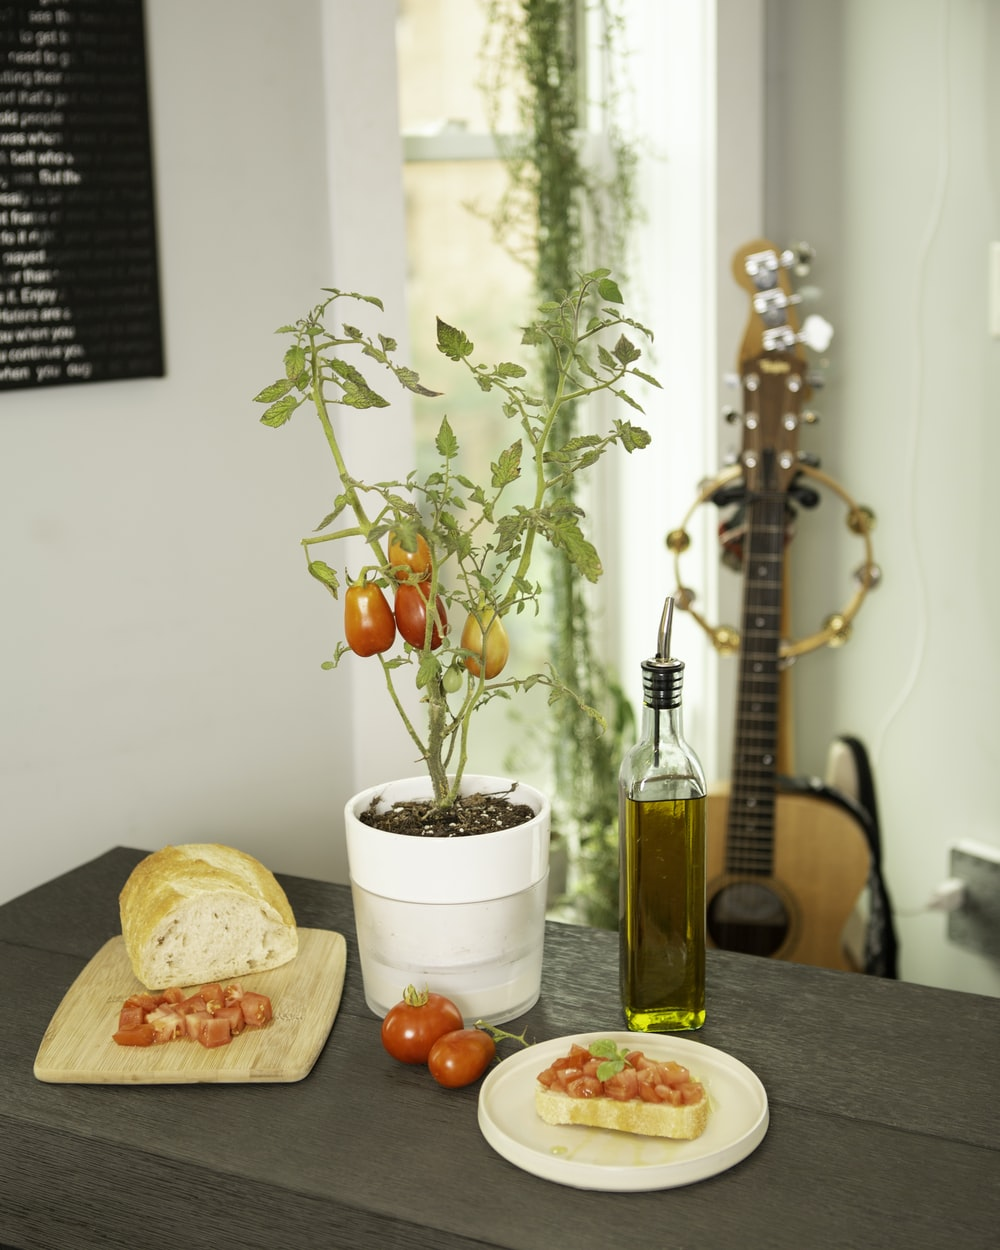 red berries on white ceramic bowl beside brown wooden acoustic guitar